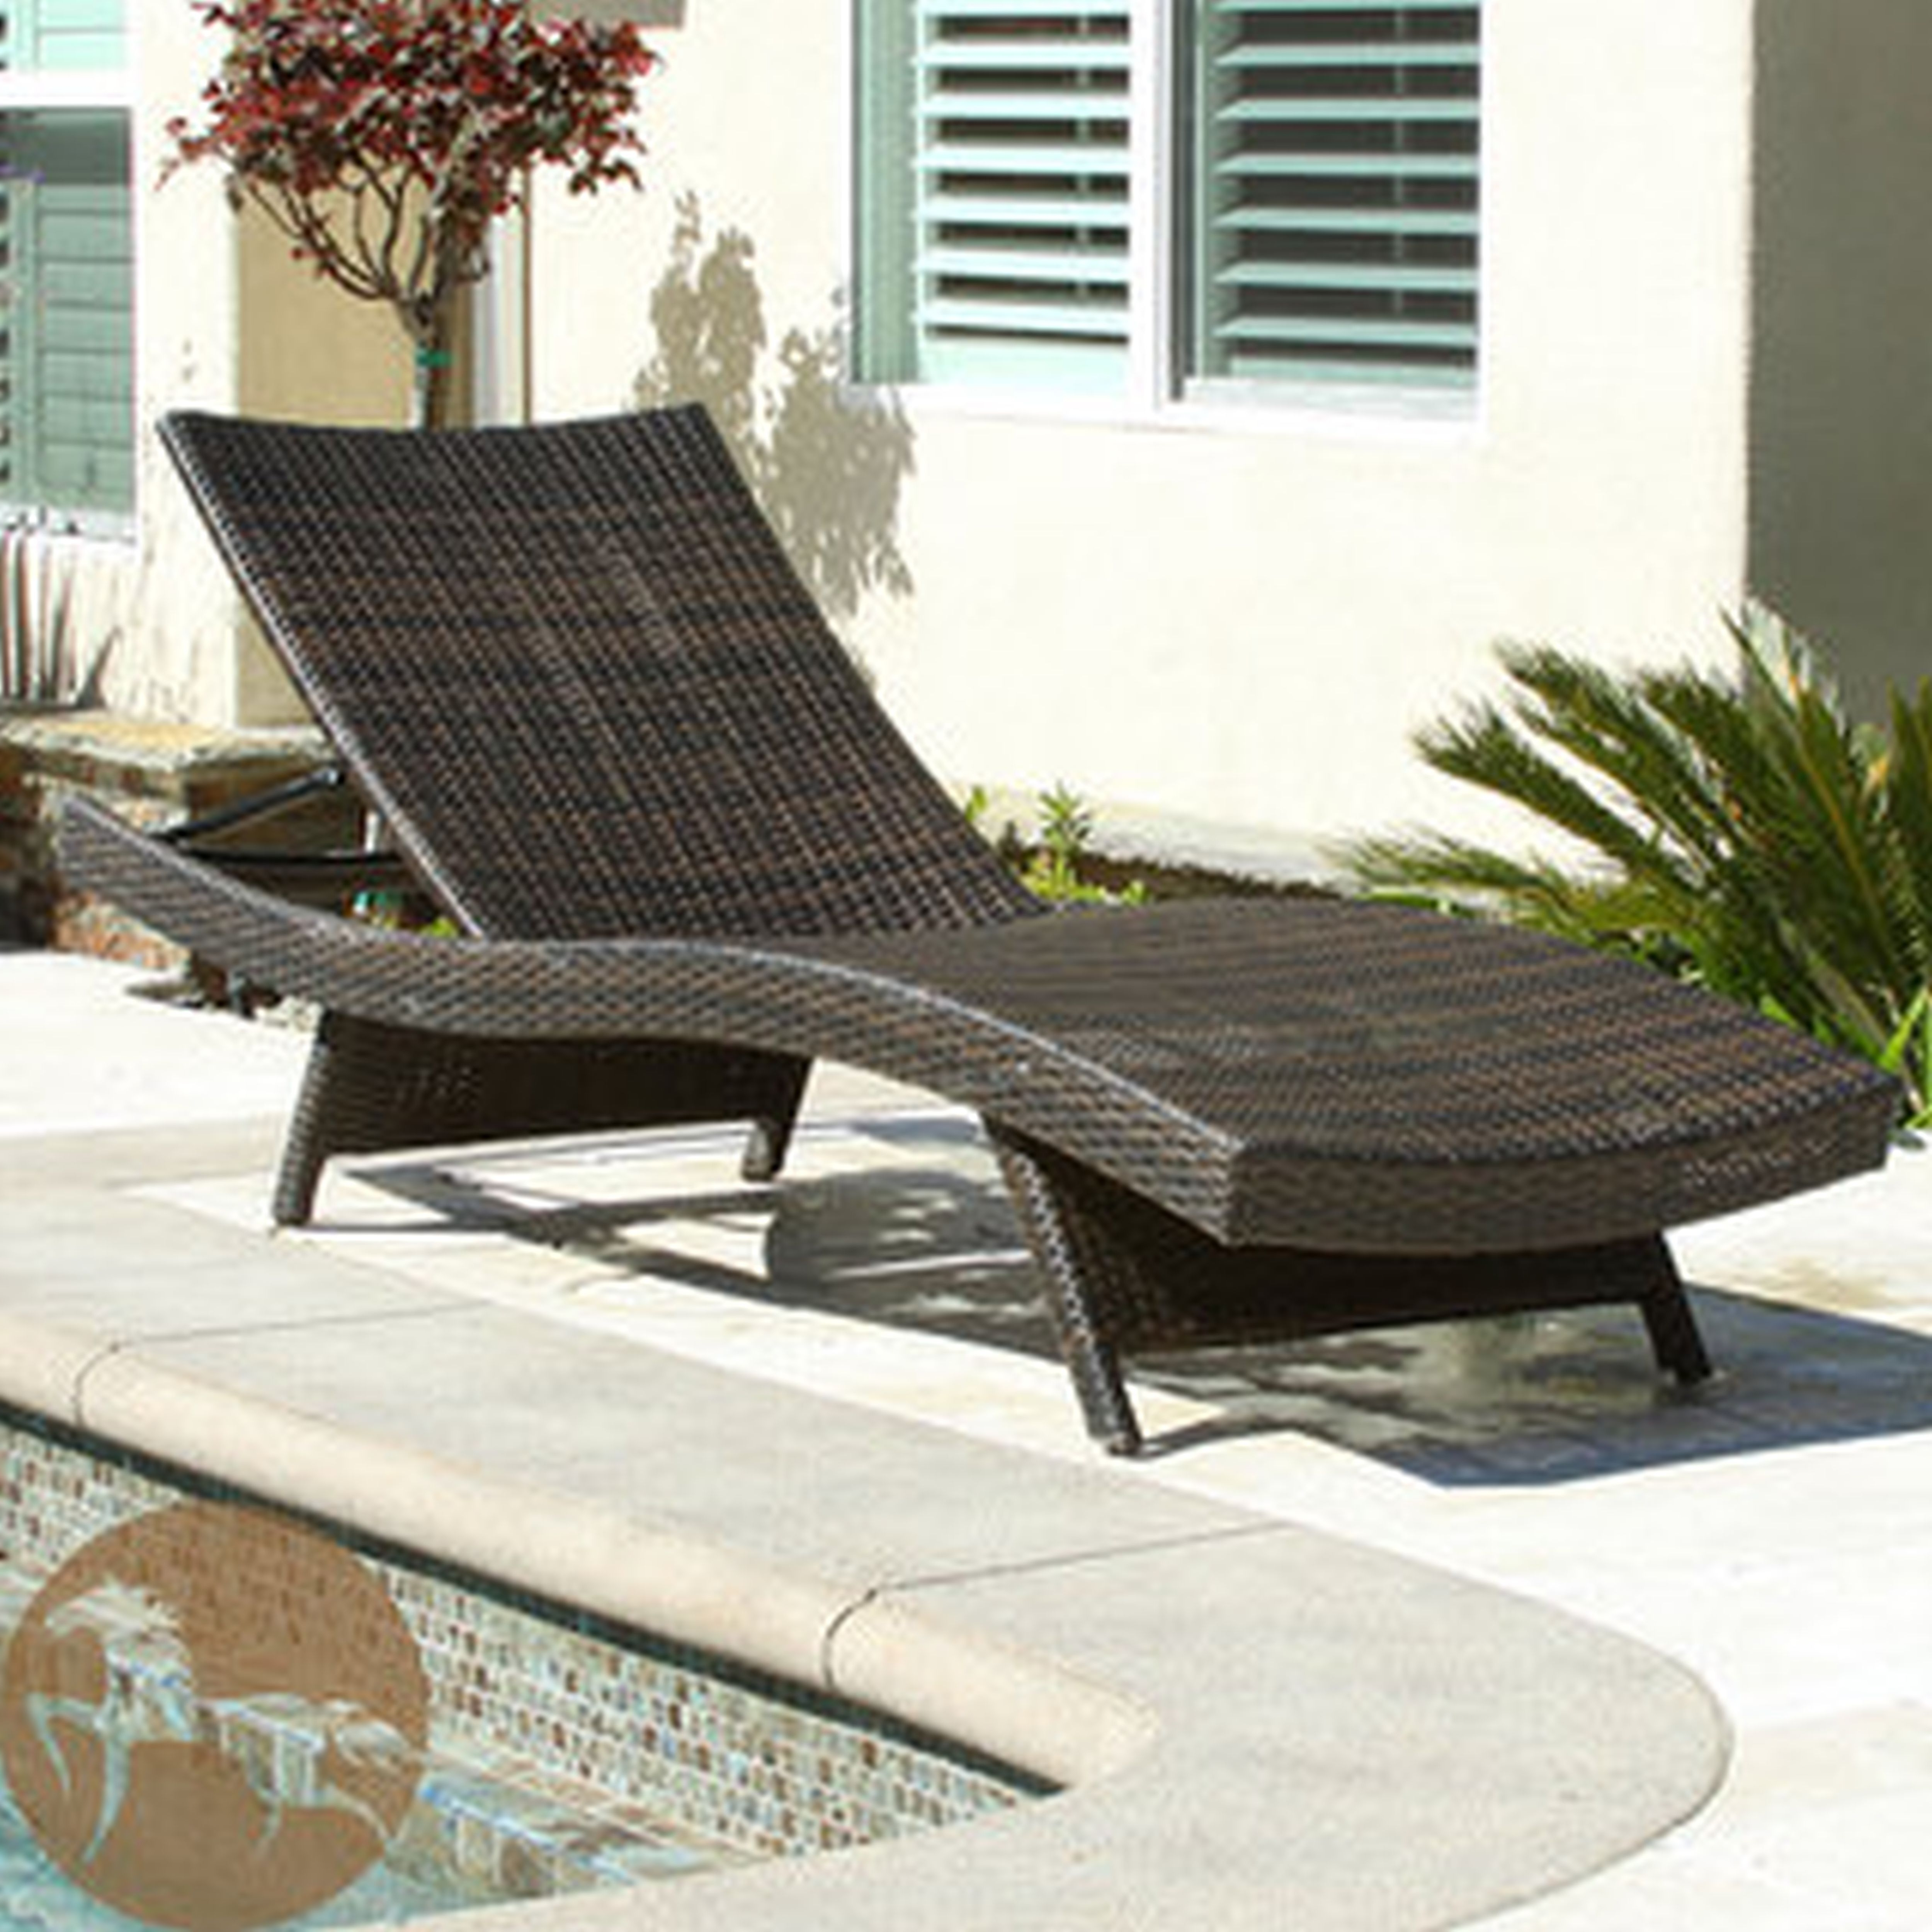 Current Chaise Lounge Chairs For Poolside Throughout Outdoor : Chaise Lounge Sofa Lowes Patio Furniture Clearance (View 11 of 15)